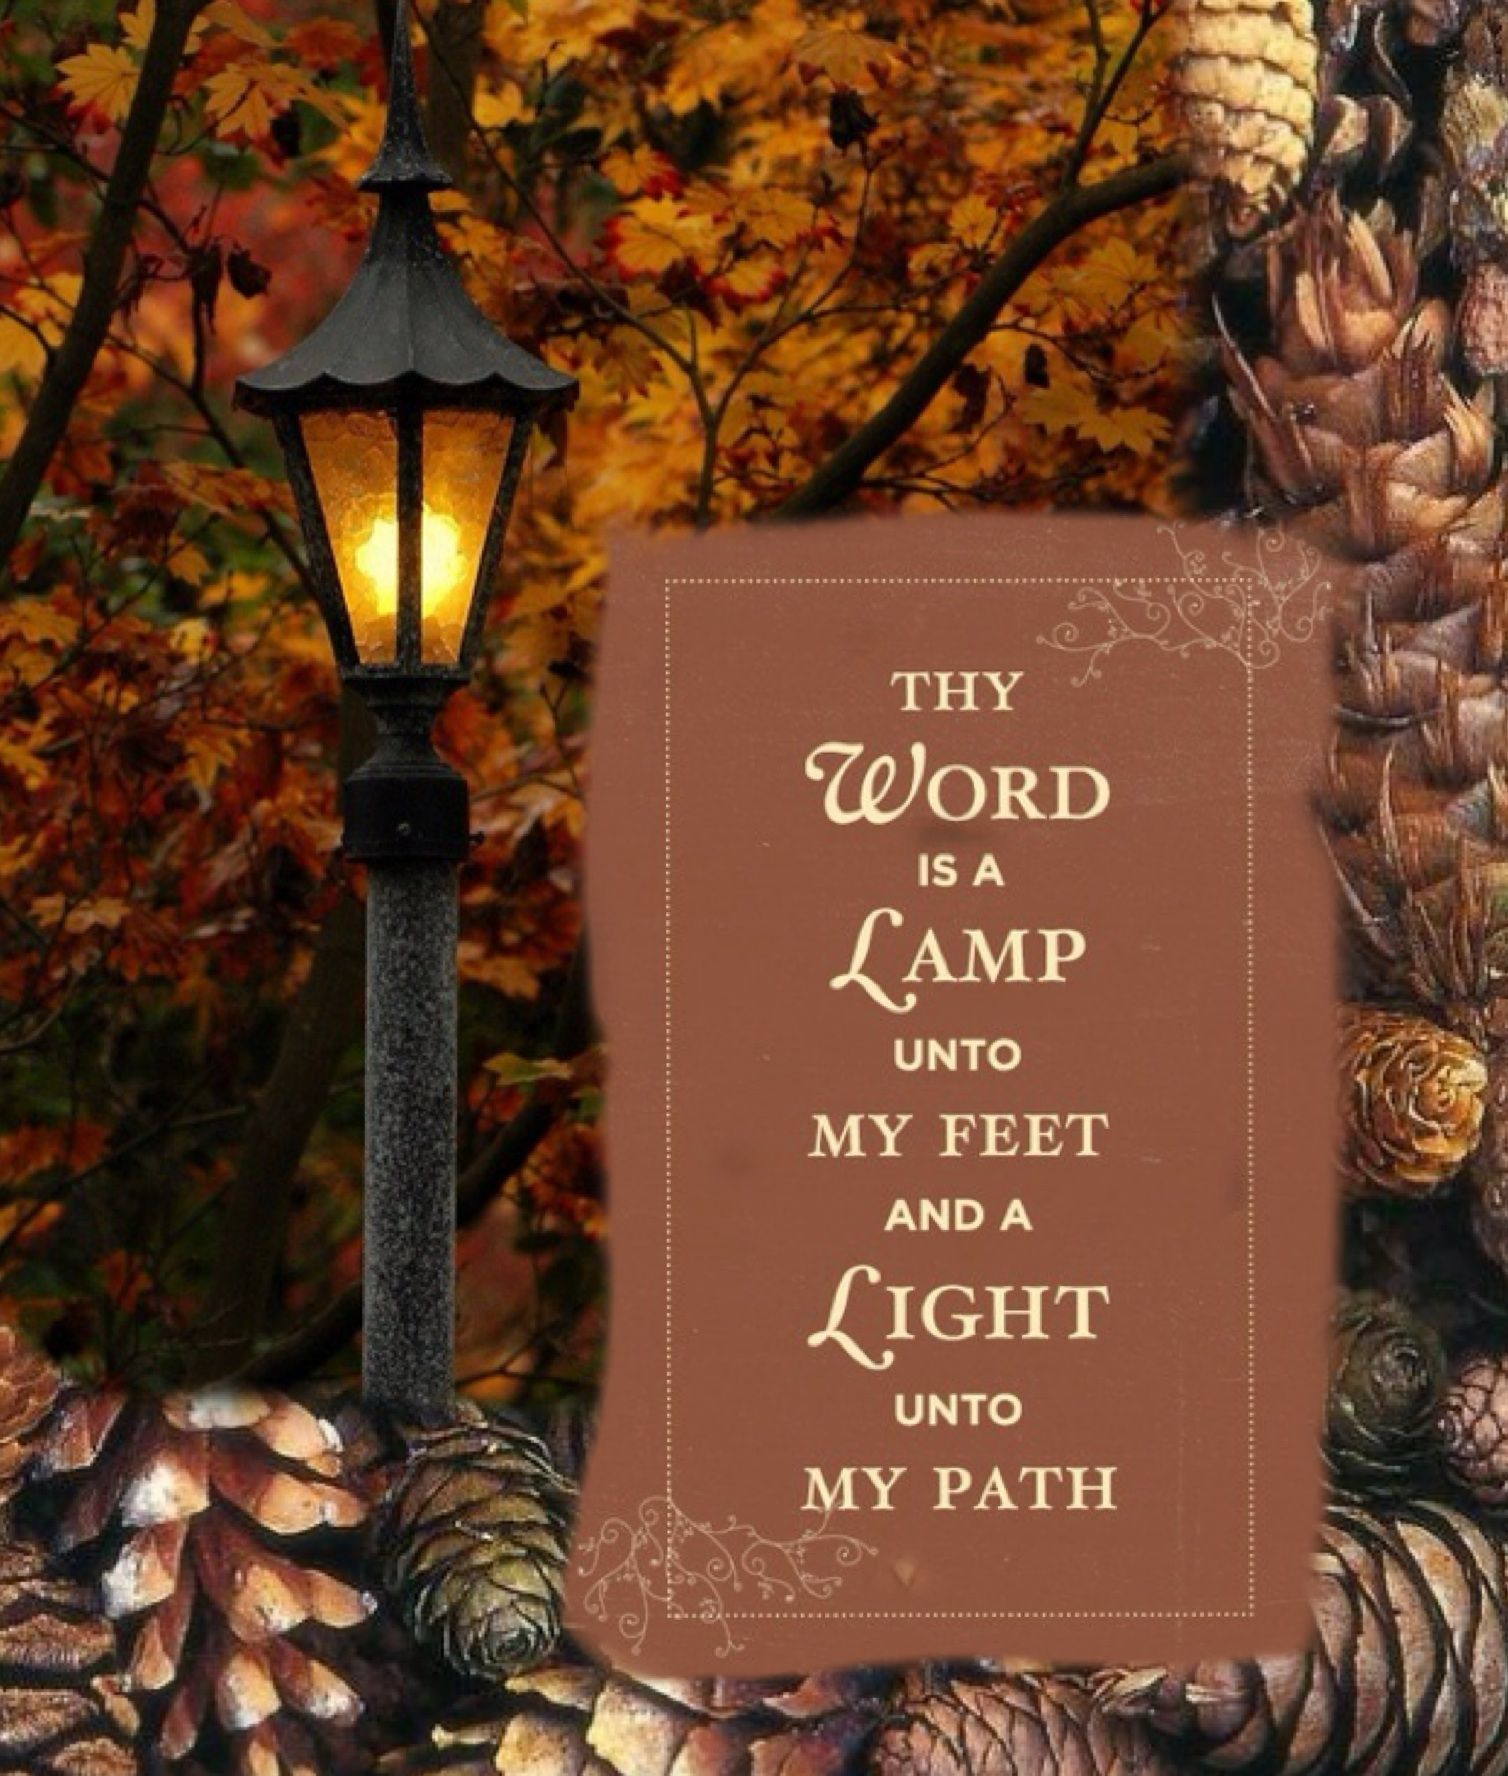 bible 105 119:105-112 the word of god directs us in our work and way, and a dark place indeed the world would be without it the commandment is a lamp kept burning with the oil of the spirit, as a light to direct us in the choice of our way, and the steps we take in that way.